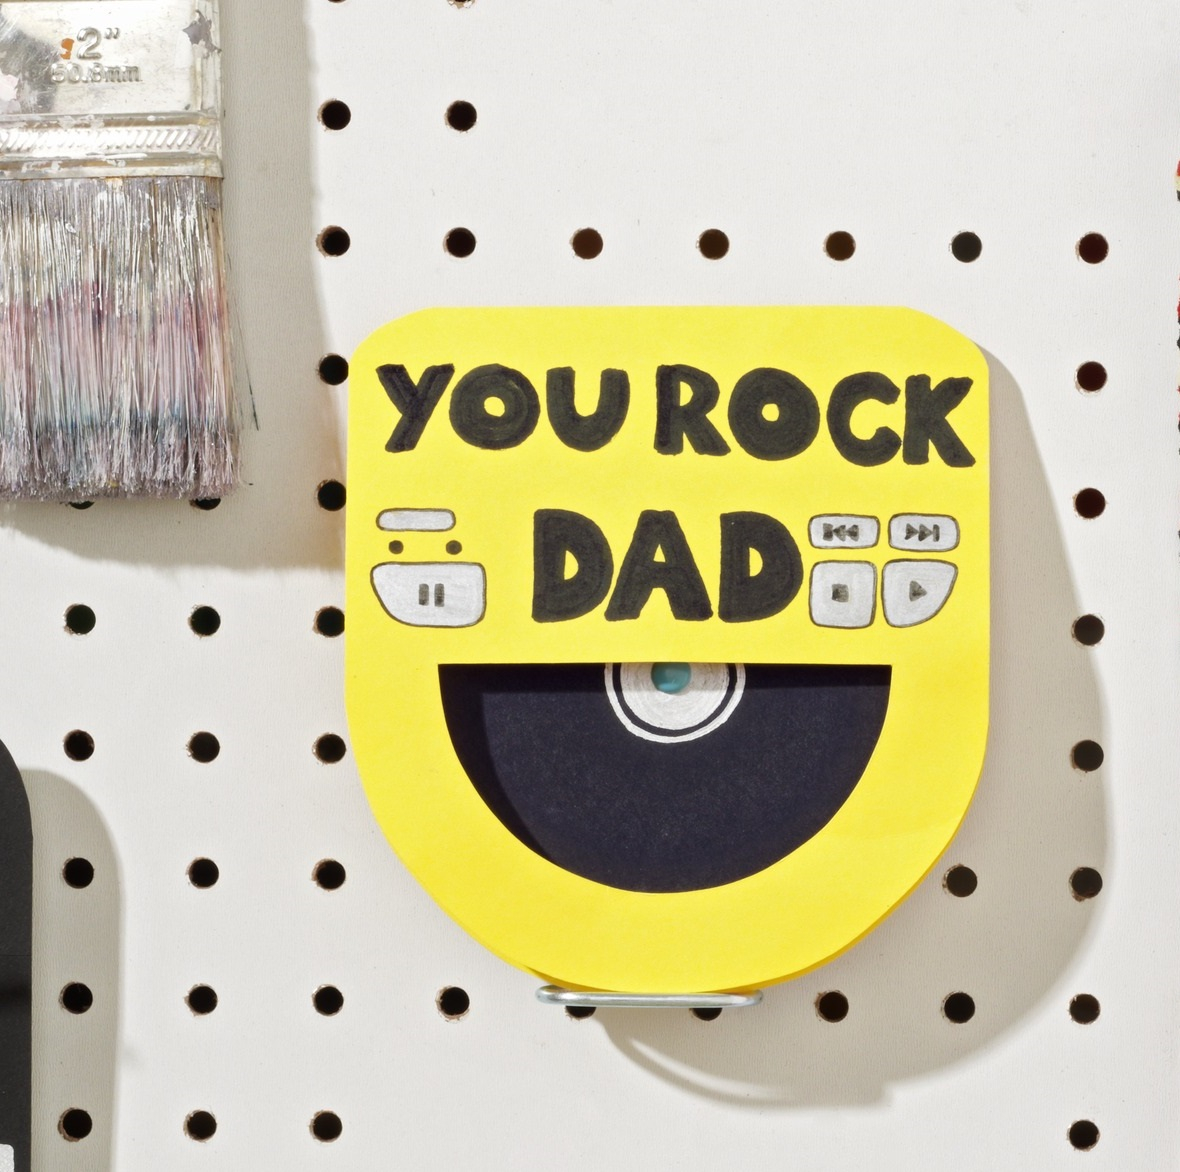 Birthday Cards Ideas For Dad Fathers Day Crafts For Kids 21 Too Cute Gift Ideas For Dad Parents